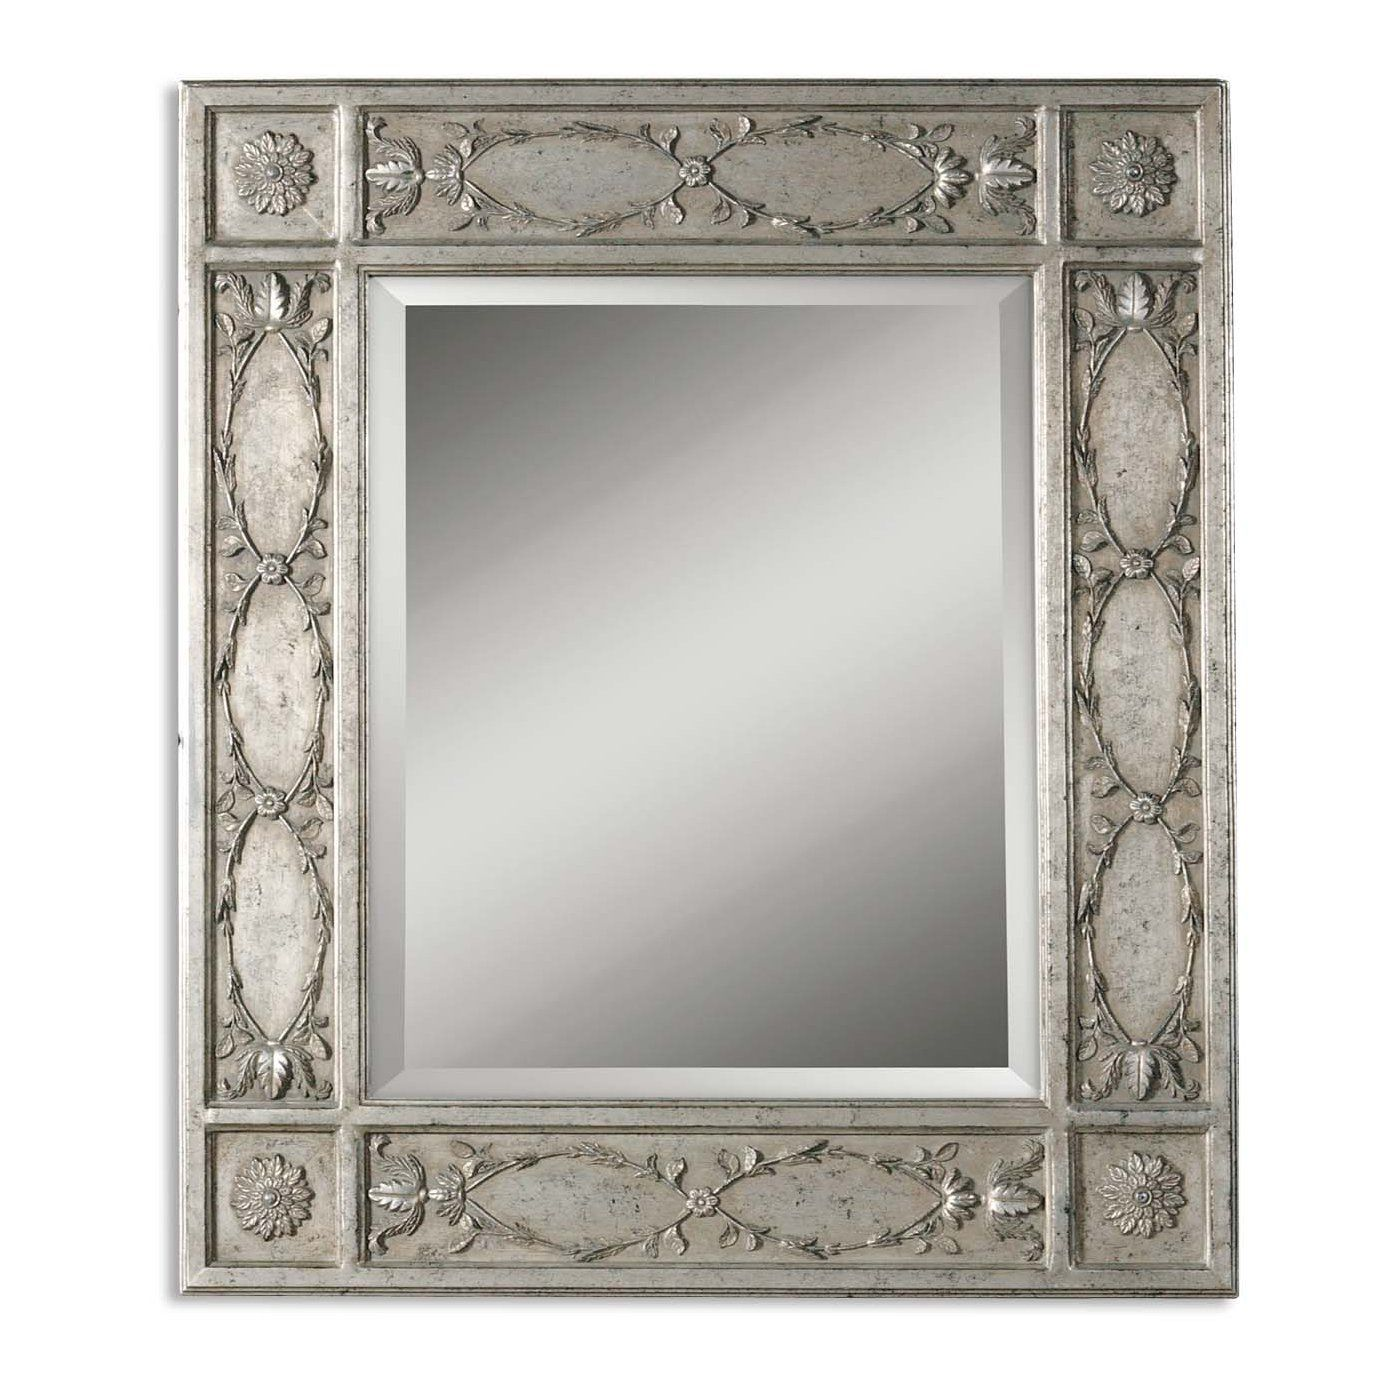 uttermost 05001 b kaylee wall mirror silver leaf mirror on lowes paint sale today id=47367